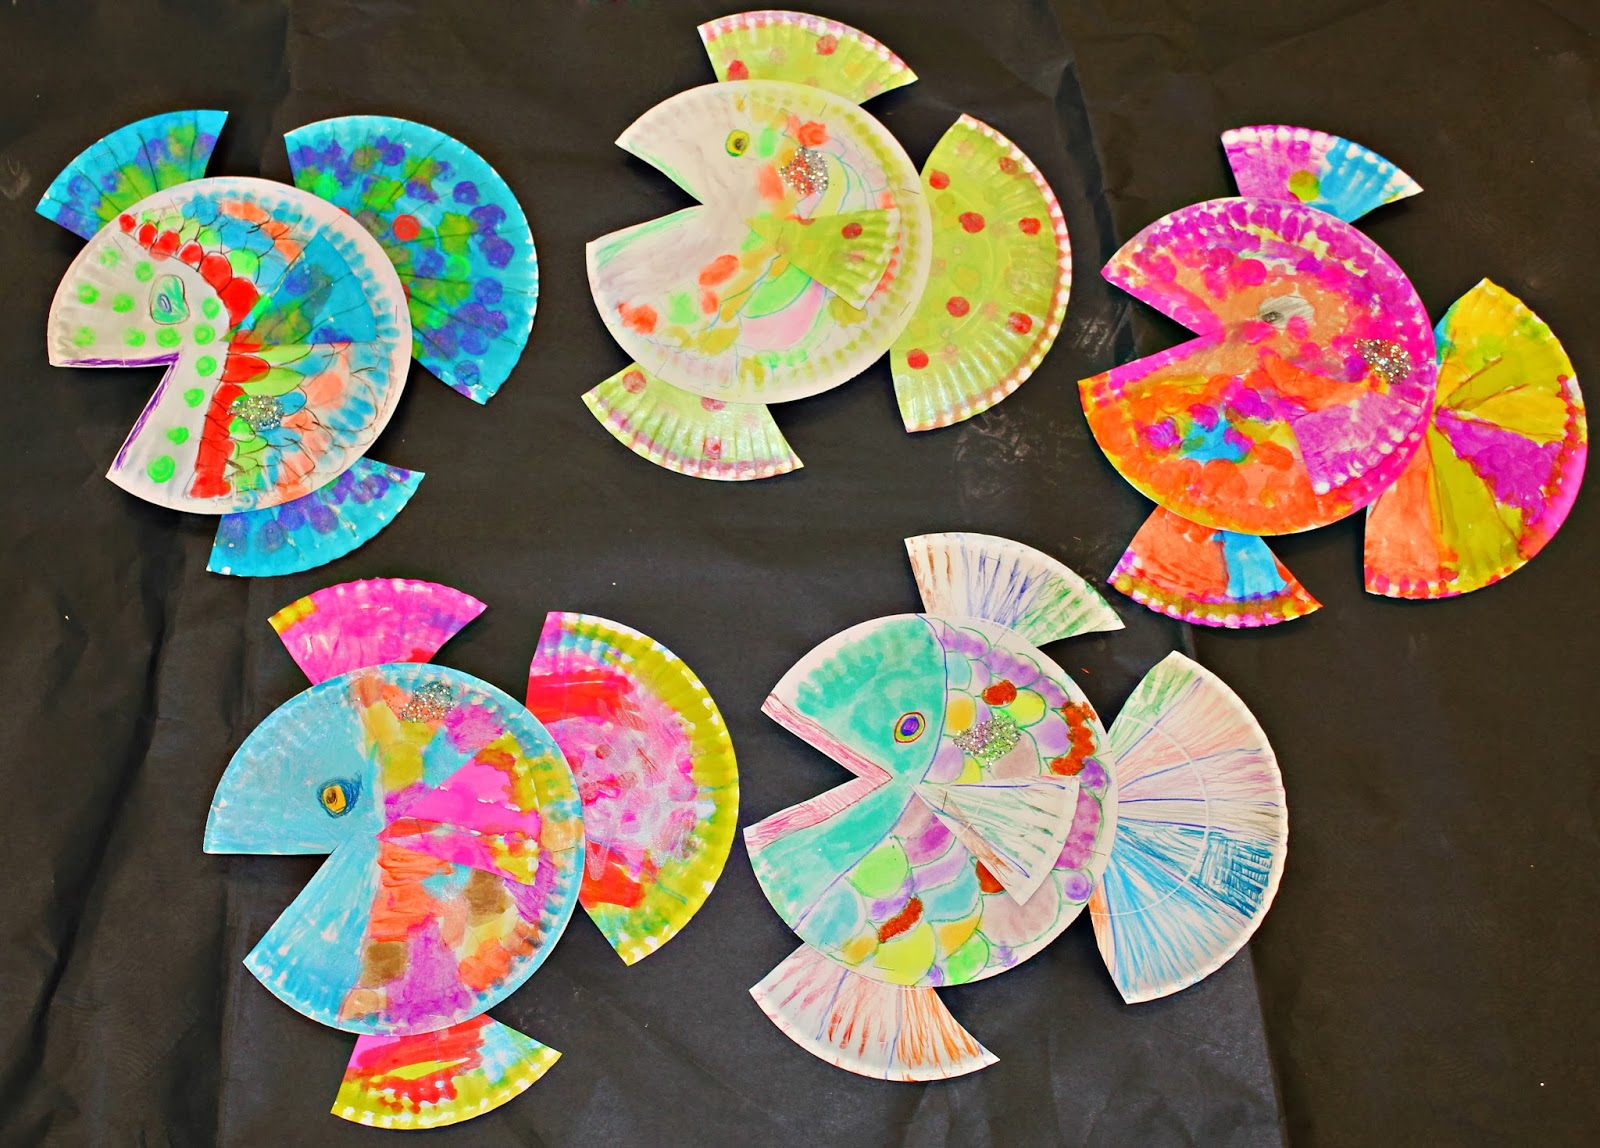 K/1 Created these wonderful fish with two paper plates paint sticks and lots of smiles!  sc 1 st  Art at Stone-Robinson Elementary - Blogger : paper plate art - pezcame.com